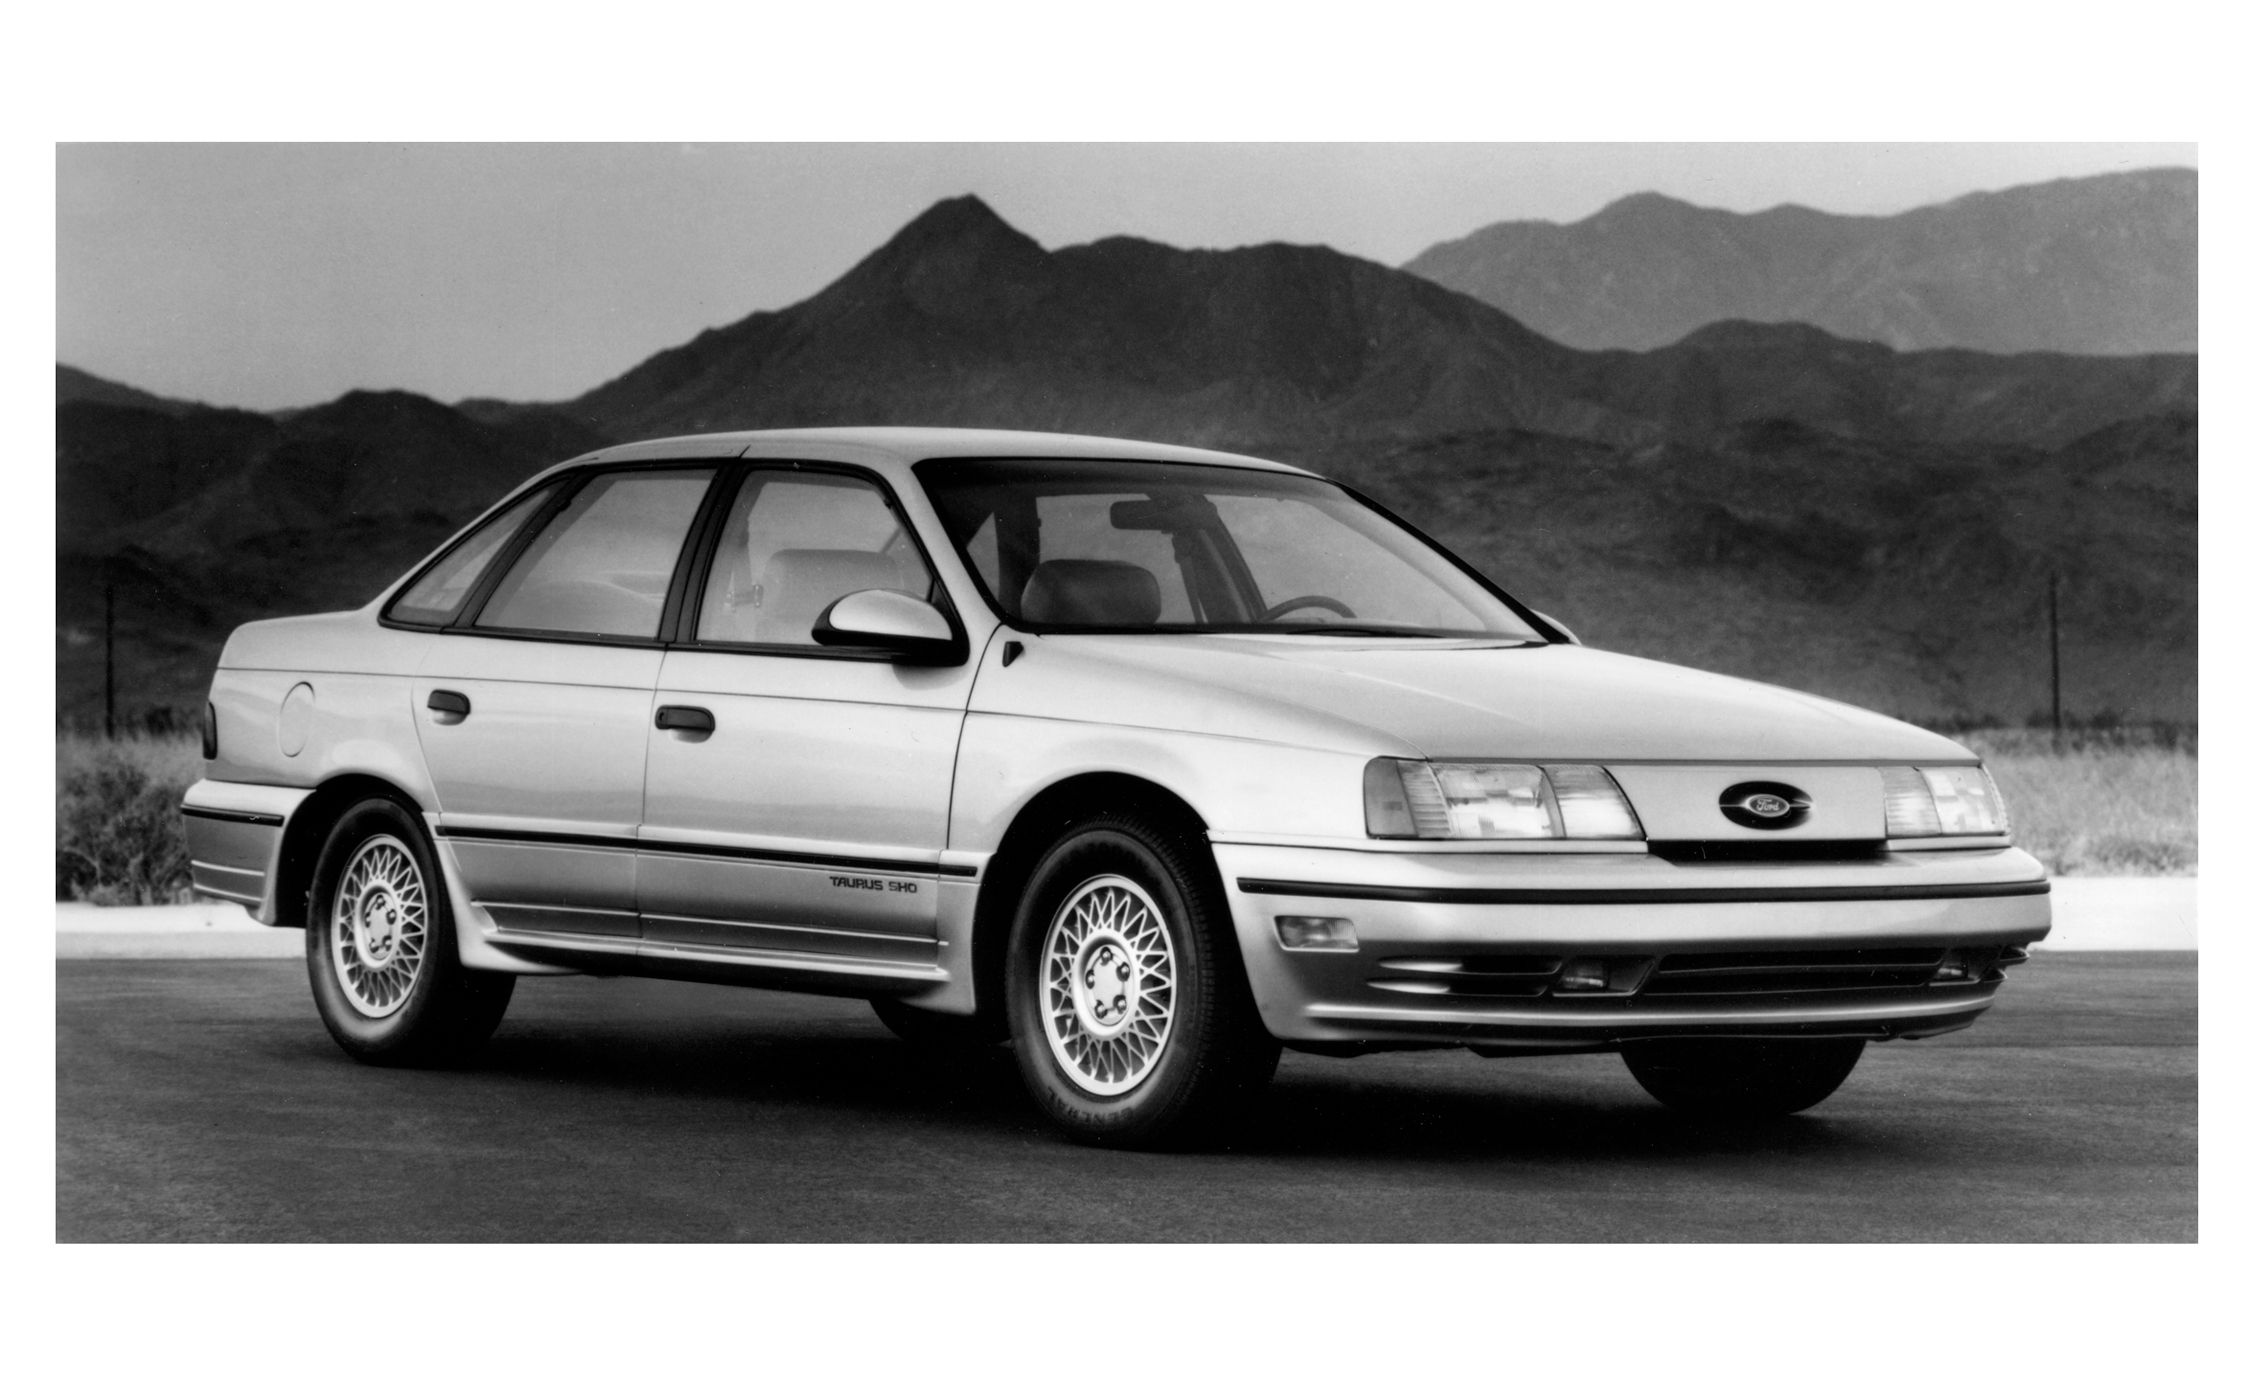 Sho Nuff A Visual History Of Ford S Iconic Taurus Sho Supersedan Ford Taurus Sho Taurus Ford